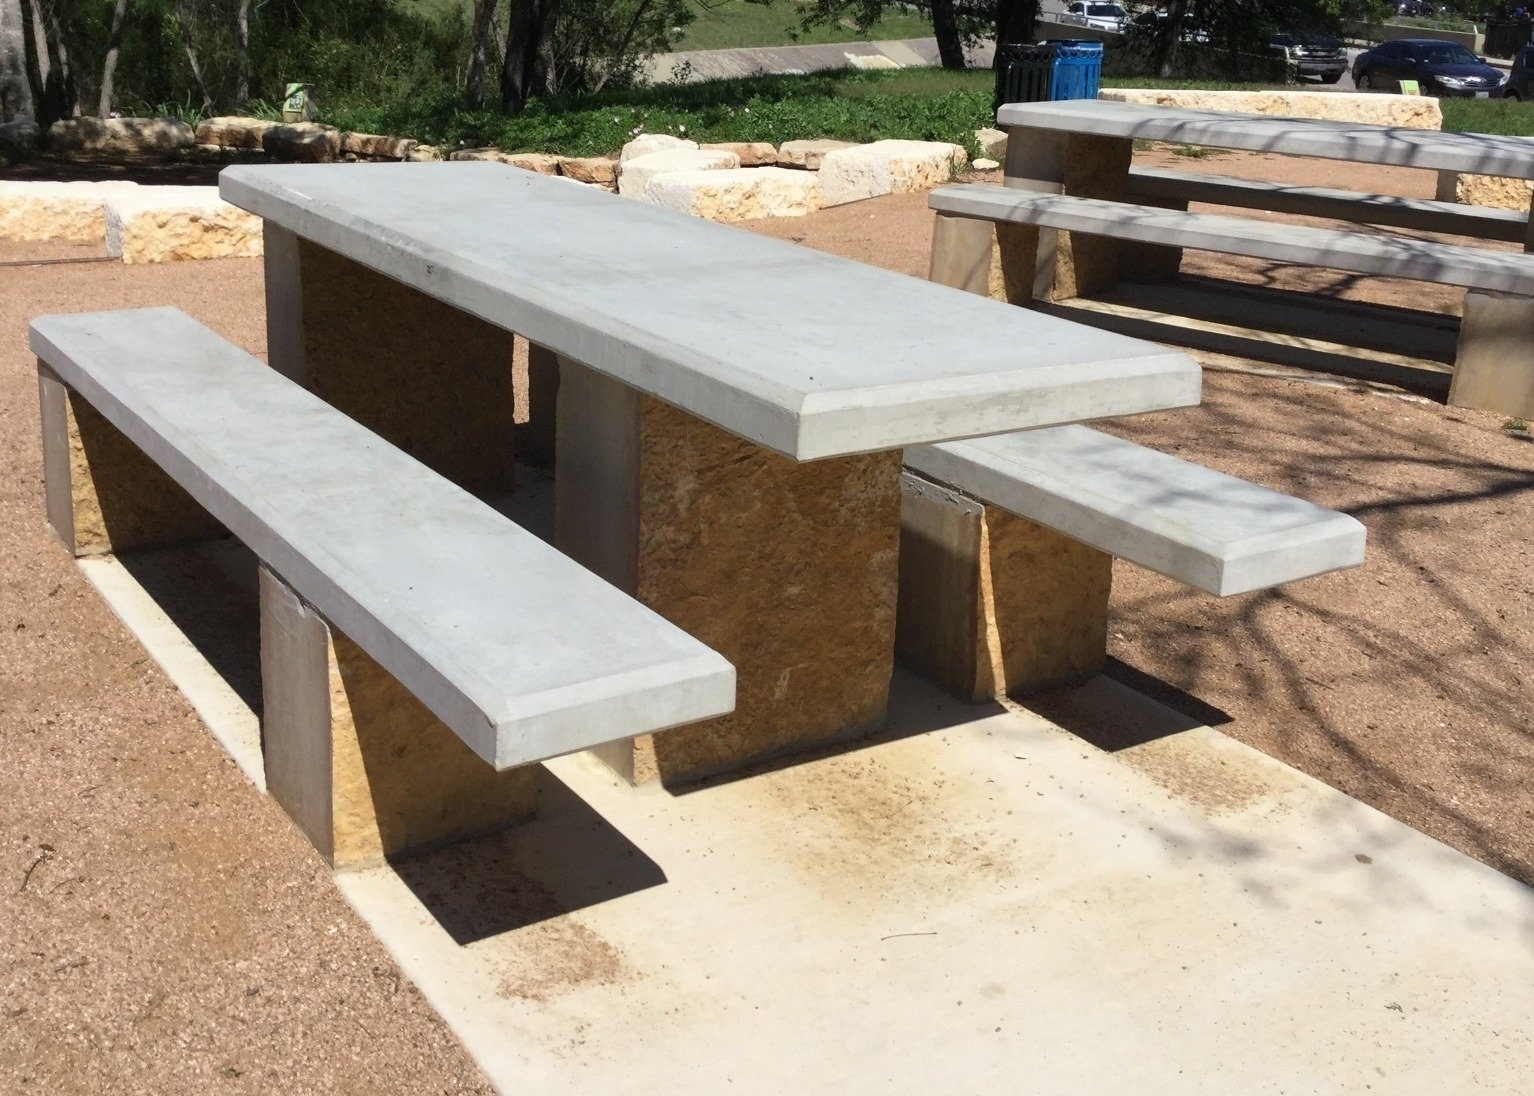 Precast Concrete Forms For Sale: Concrete Picnic Tables For Sale